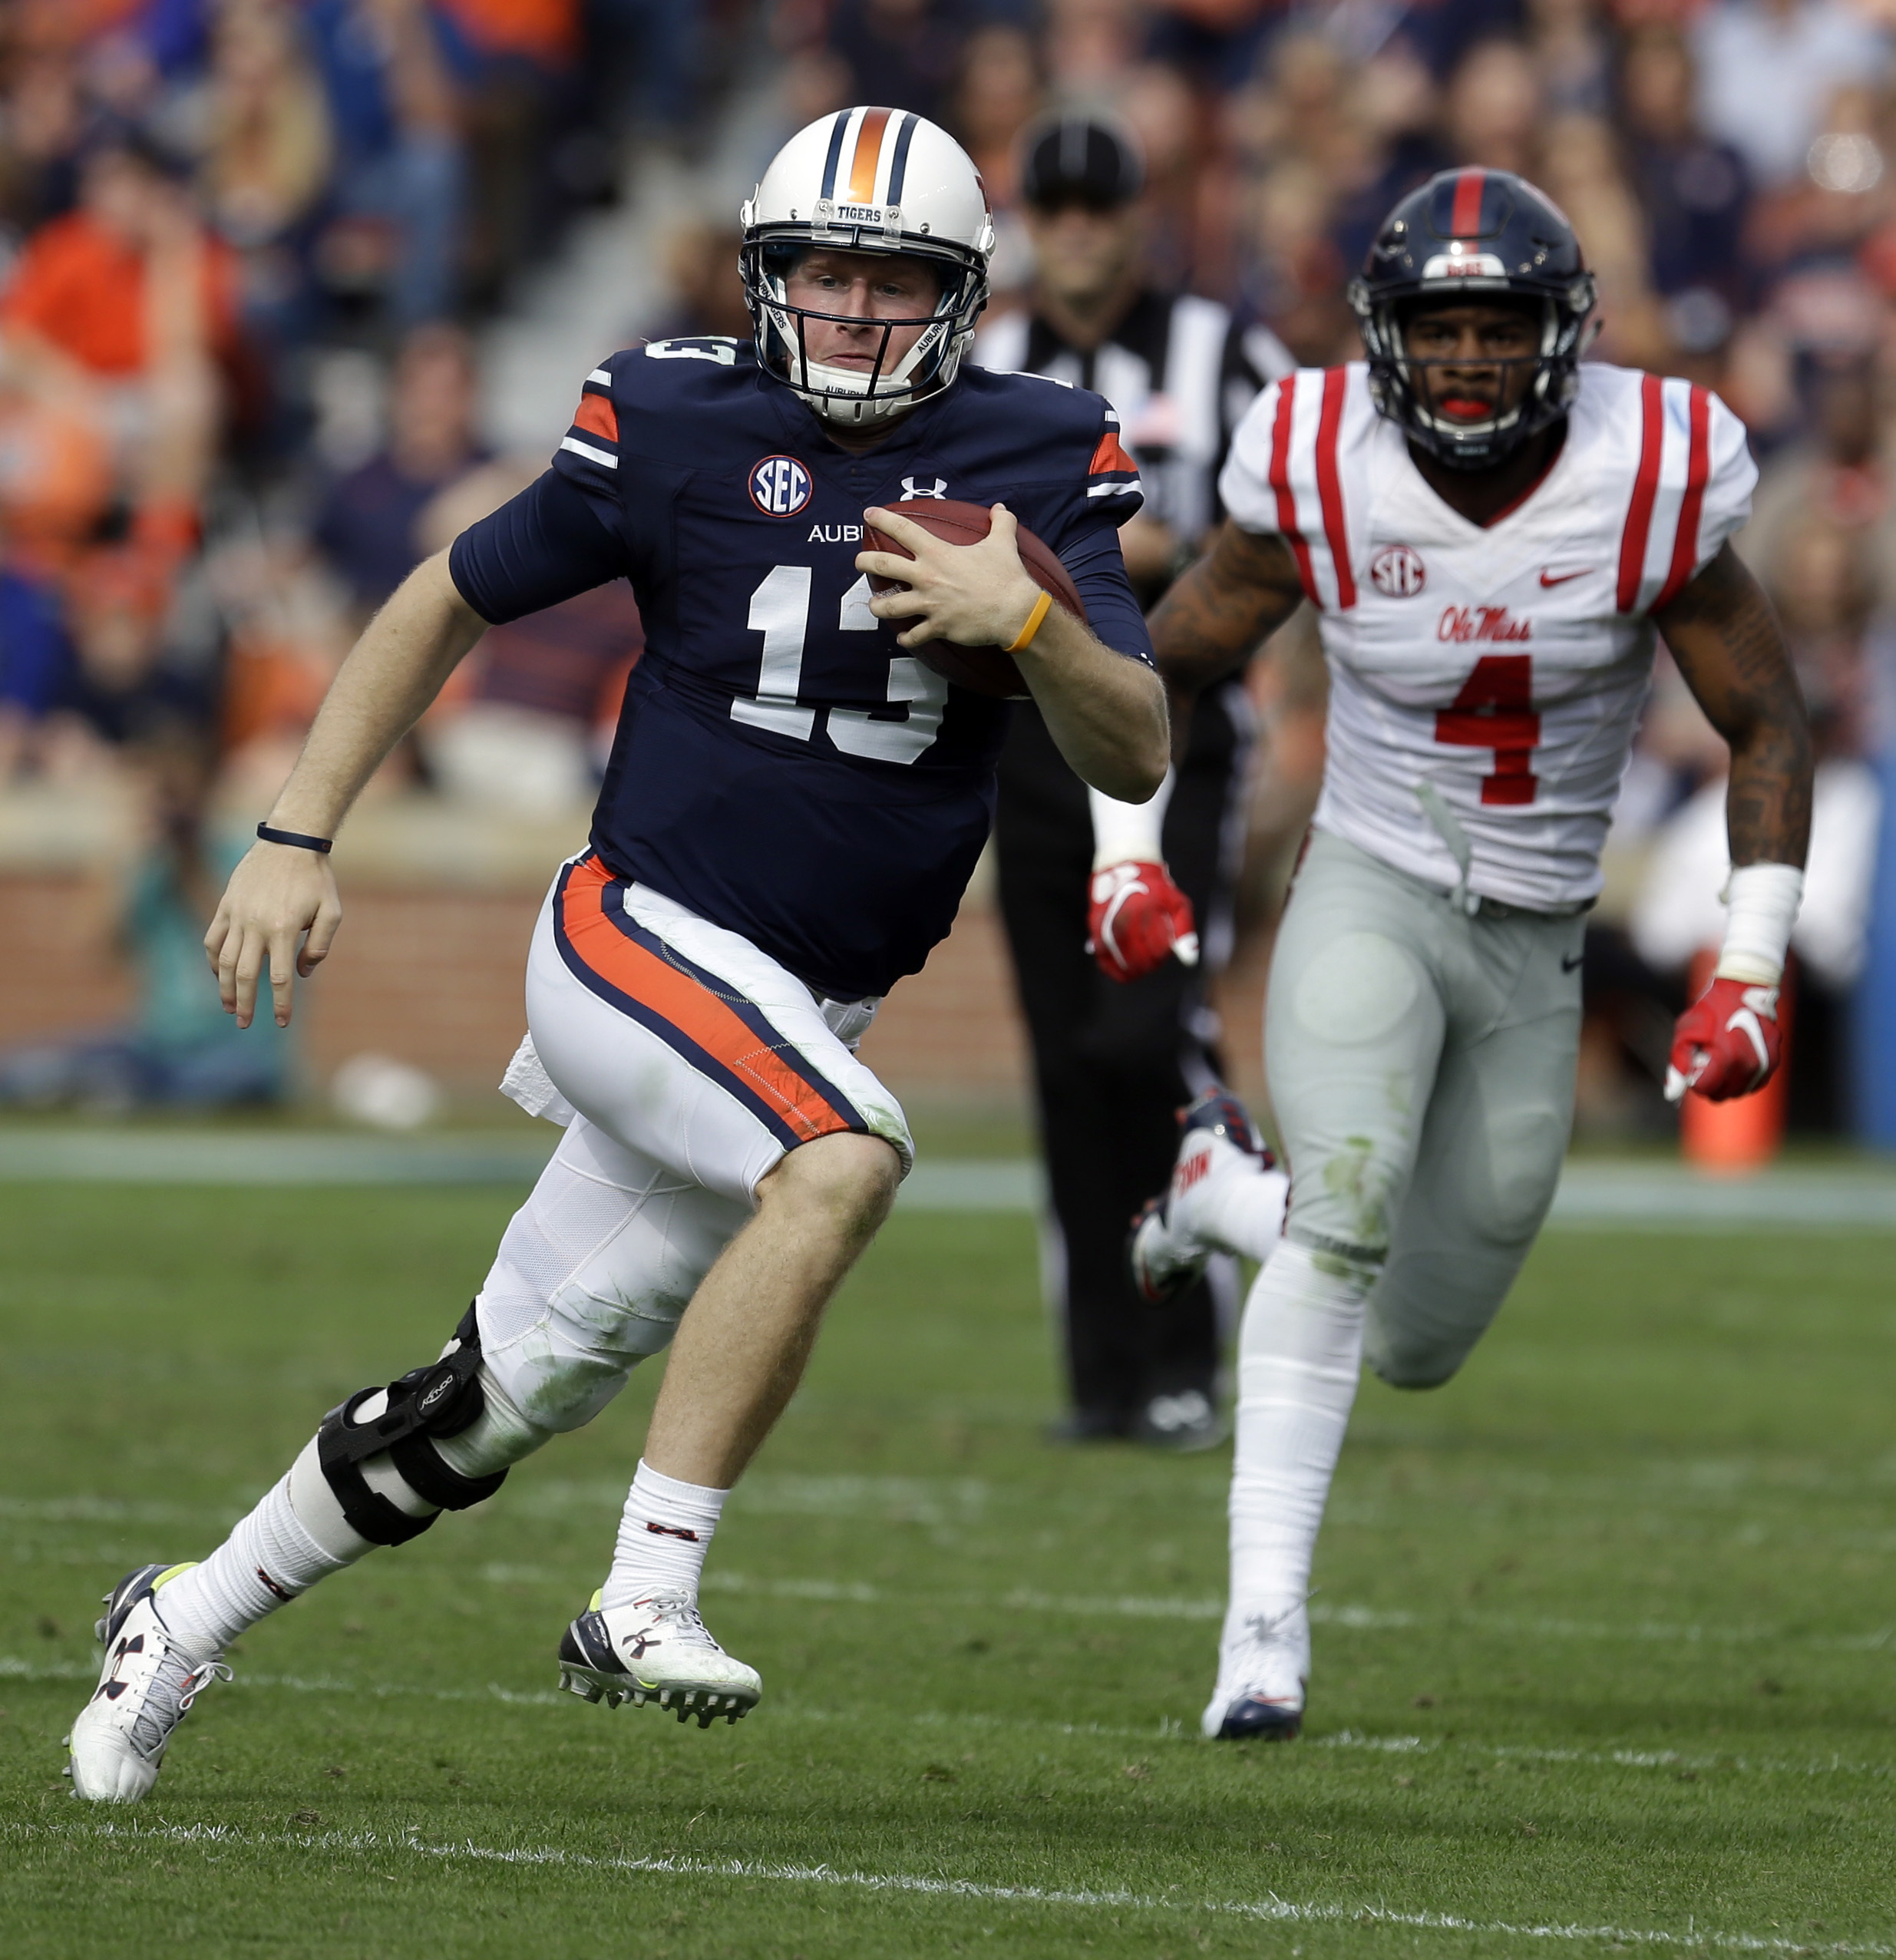 Auburn quarterback Sean White (13) scrambles for yardage during the second half of an NCAA college football game against Mississippi, Saturday, Oct. 31, 2015, in Auburn, Ala. Mississippi defeated Auburn 27-19. (AP Photo/Butch Dill)